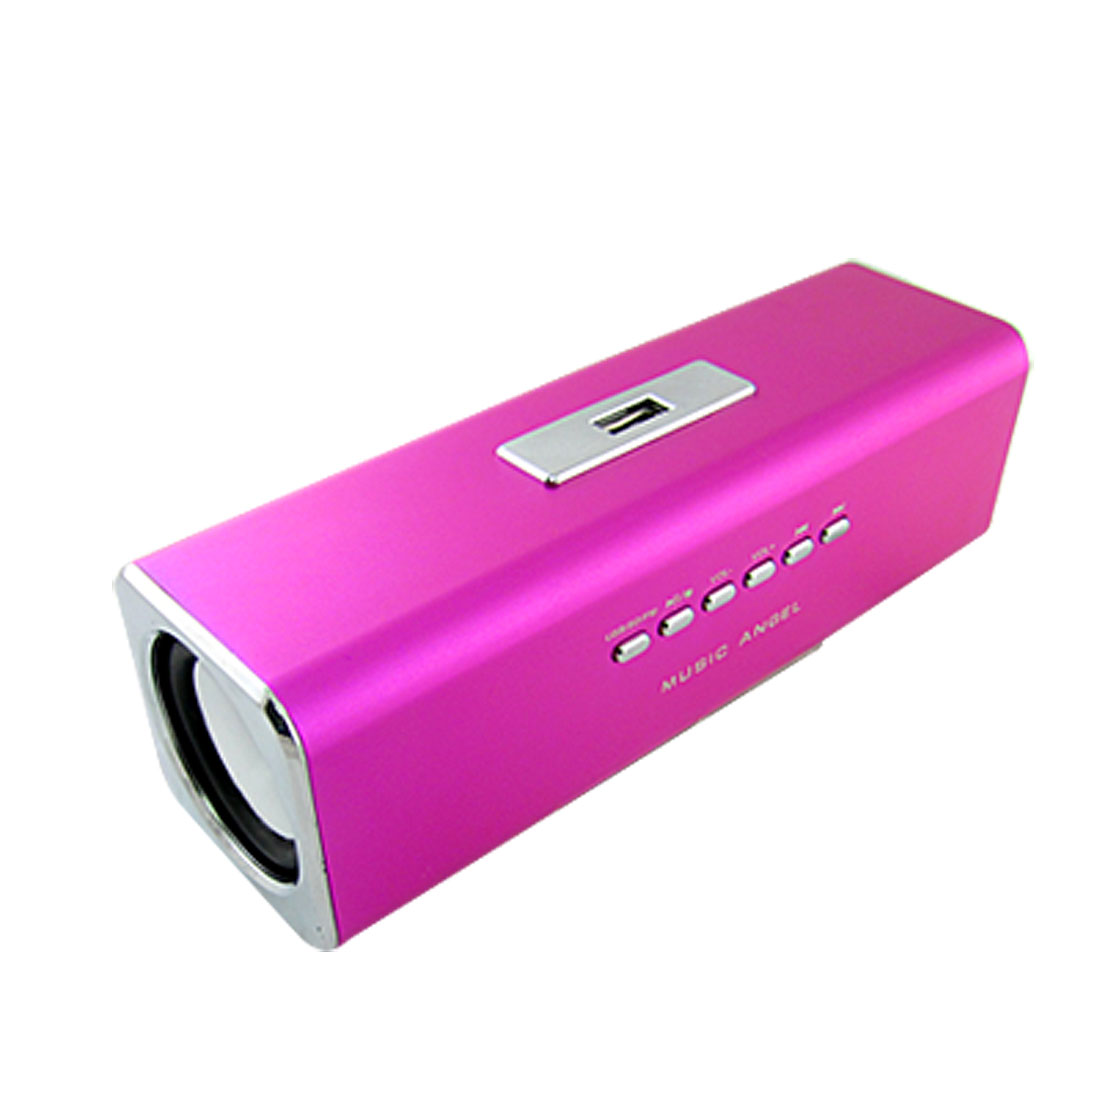 Hot Pink Portable FM Audio Design USB Speaker Sound Box w SD Card Slot